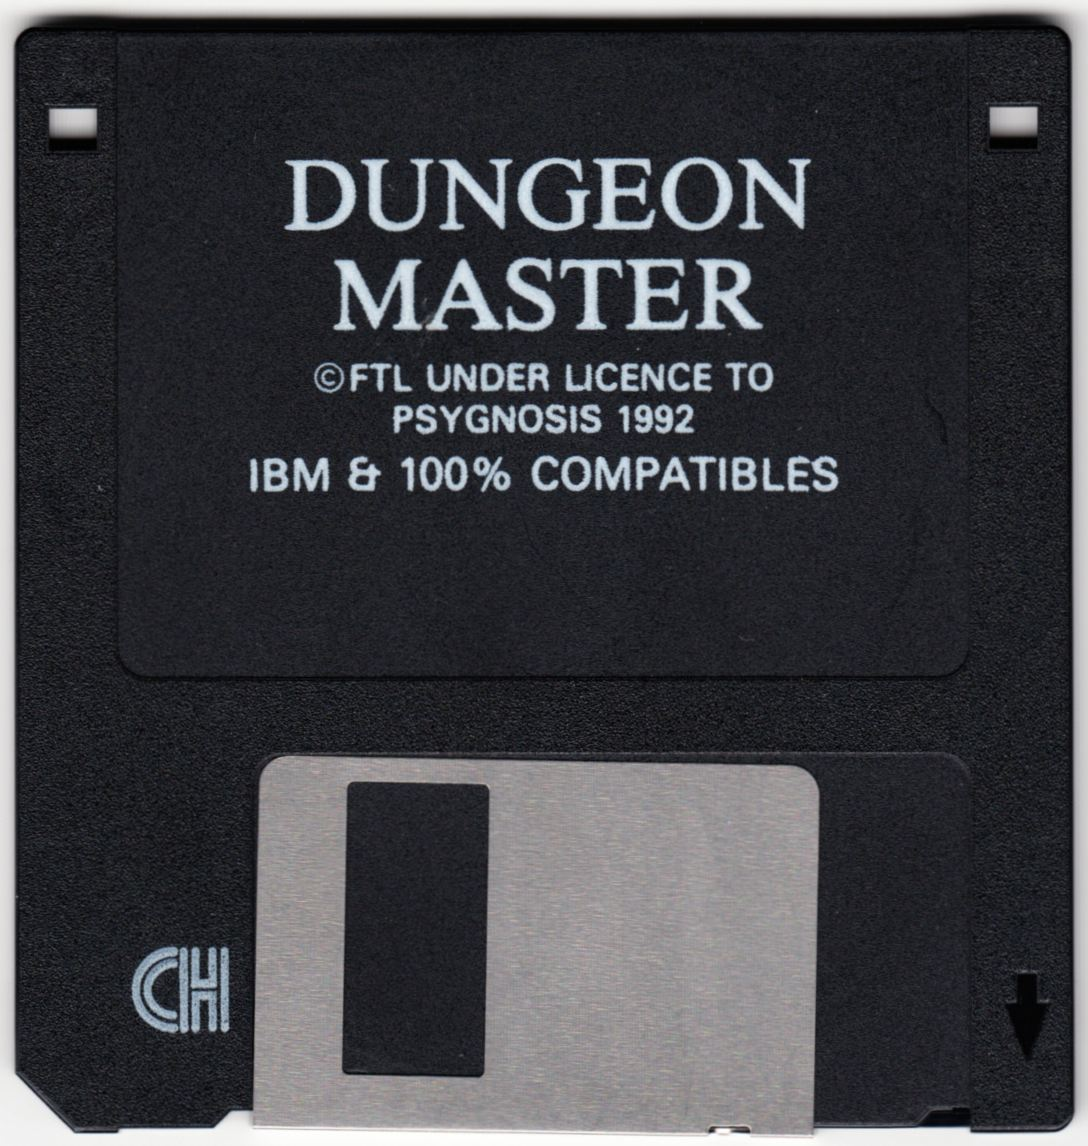 Game - Dungeon Master - DE - PC - Psygnosis - Disk - Front - Scan